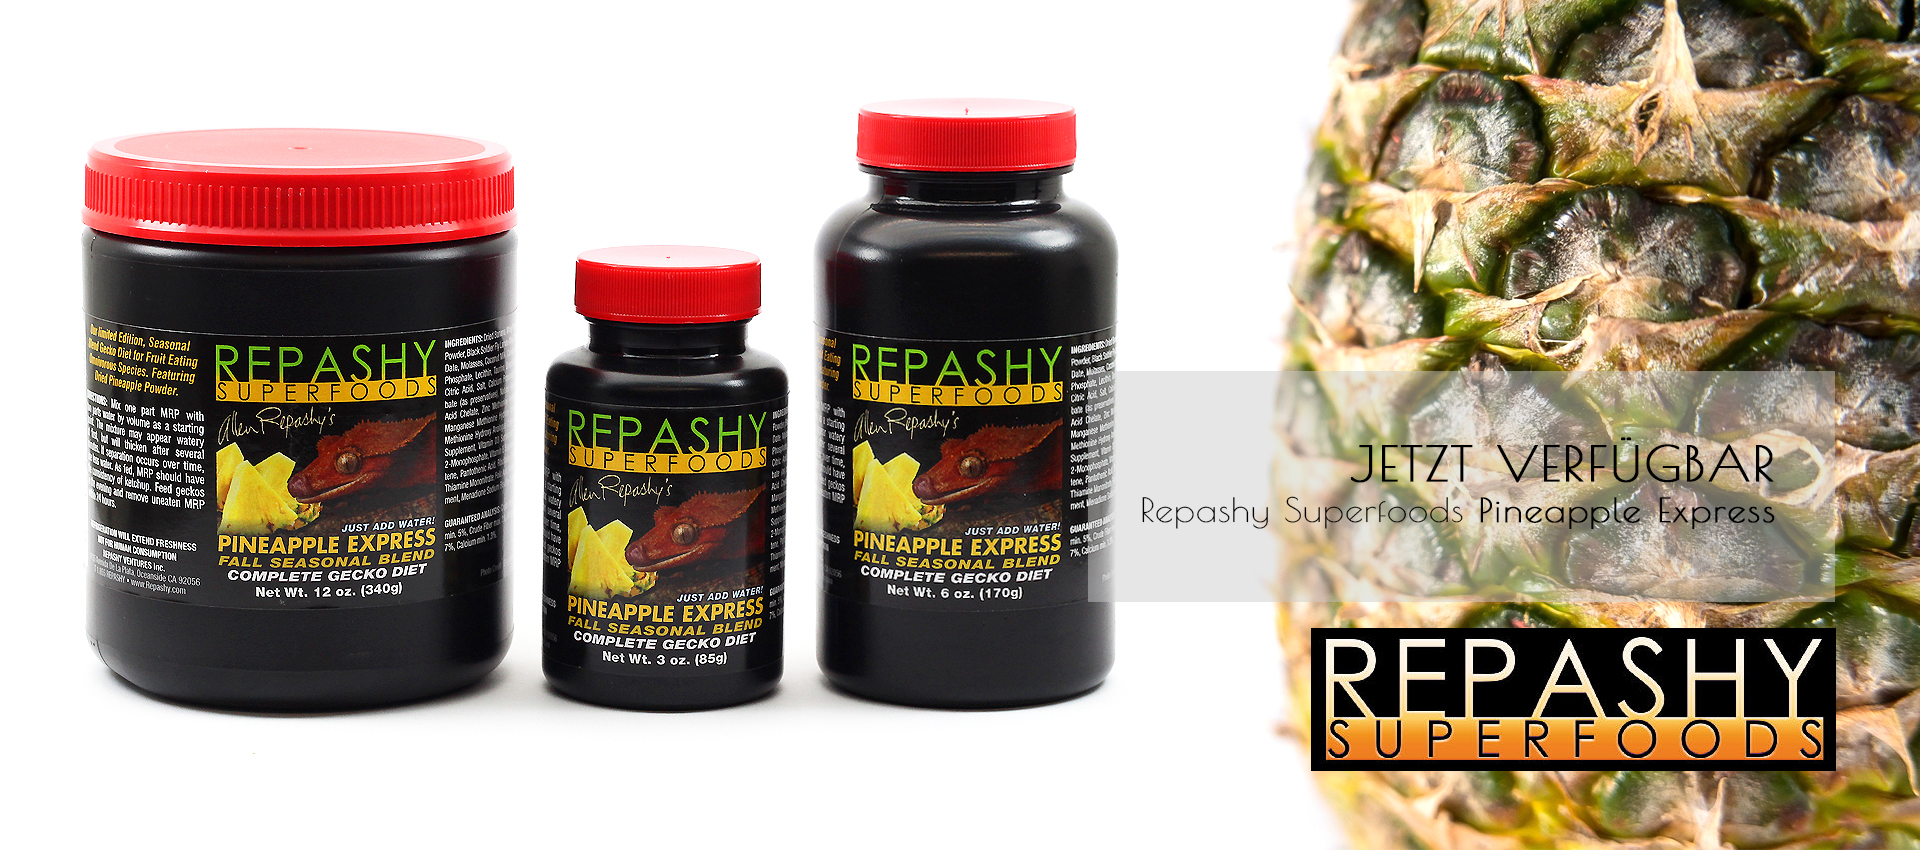 https://www.crestedgeckodiet.de/repashy-superfoods/pineapple-express